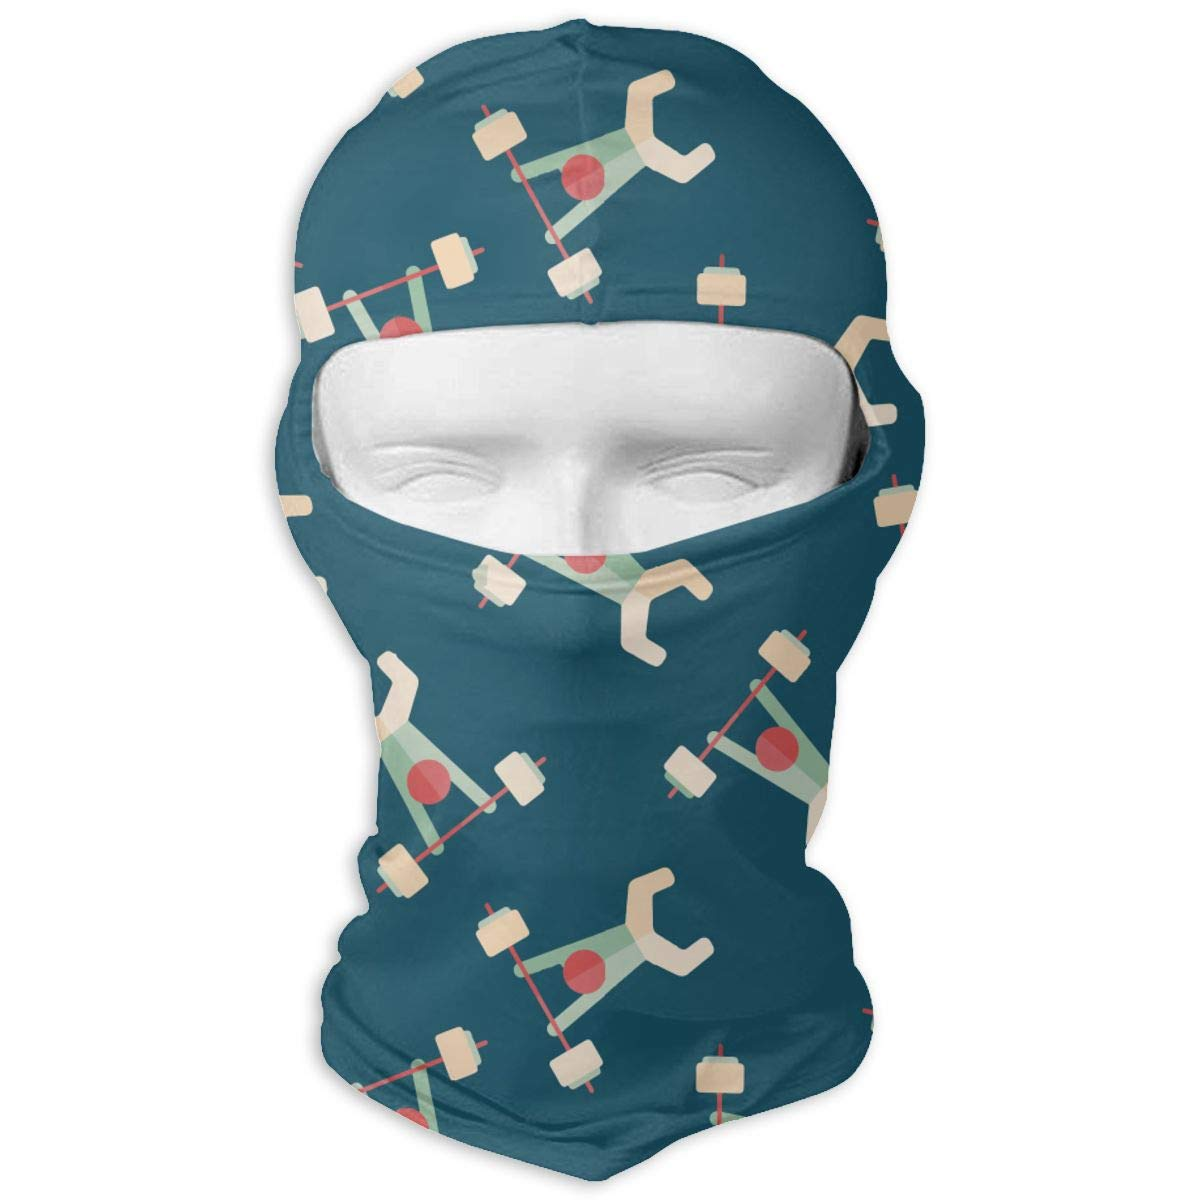 Weight Lifting Tube Balaclava Winter Ski Mask Men & Women Windproof Beanie Hat Motorcycle Outdoors Ski Mask Head Wrap Adjustable Neck Gaiter Protection